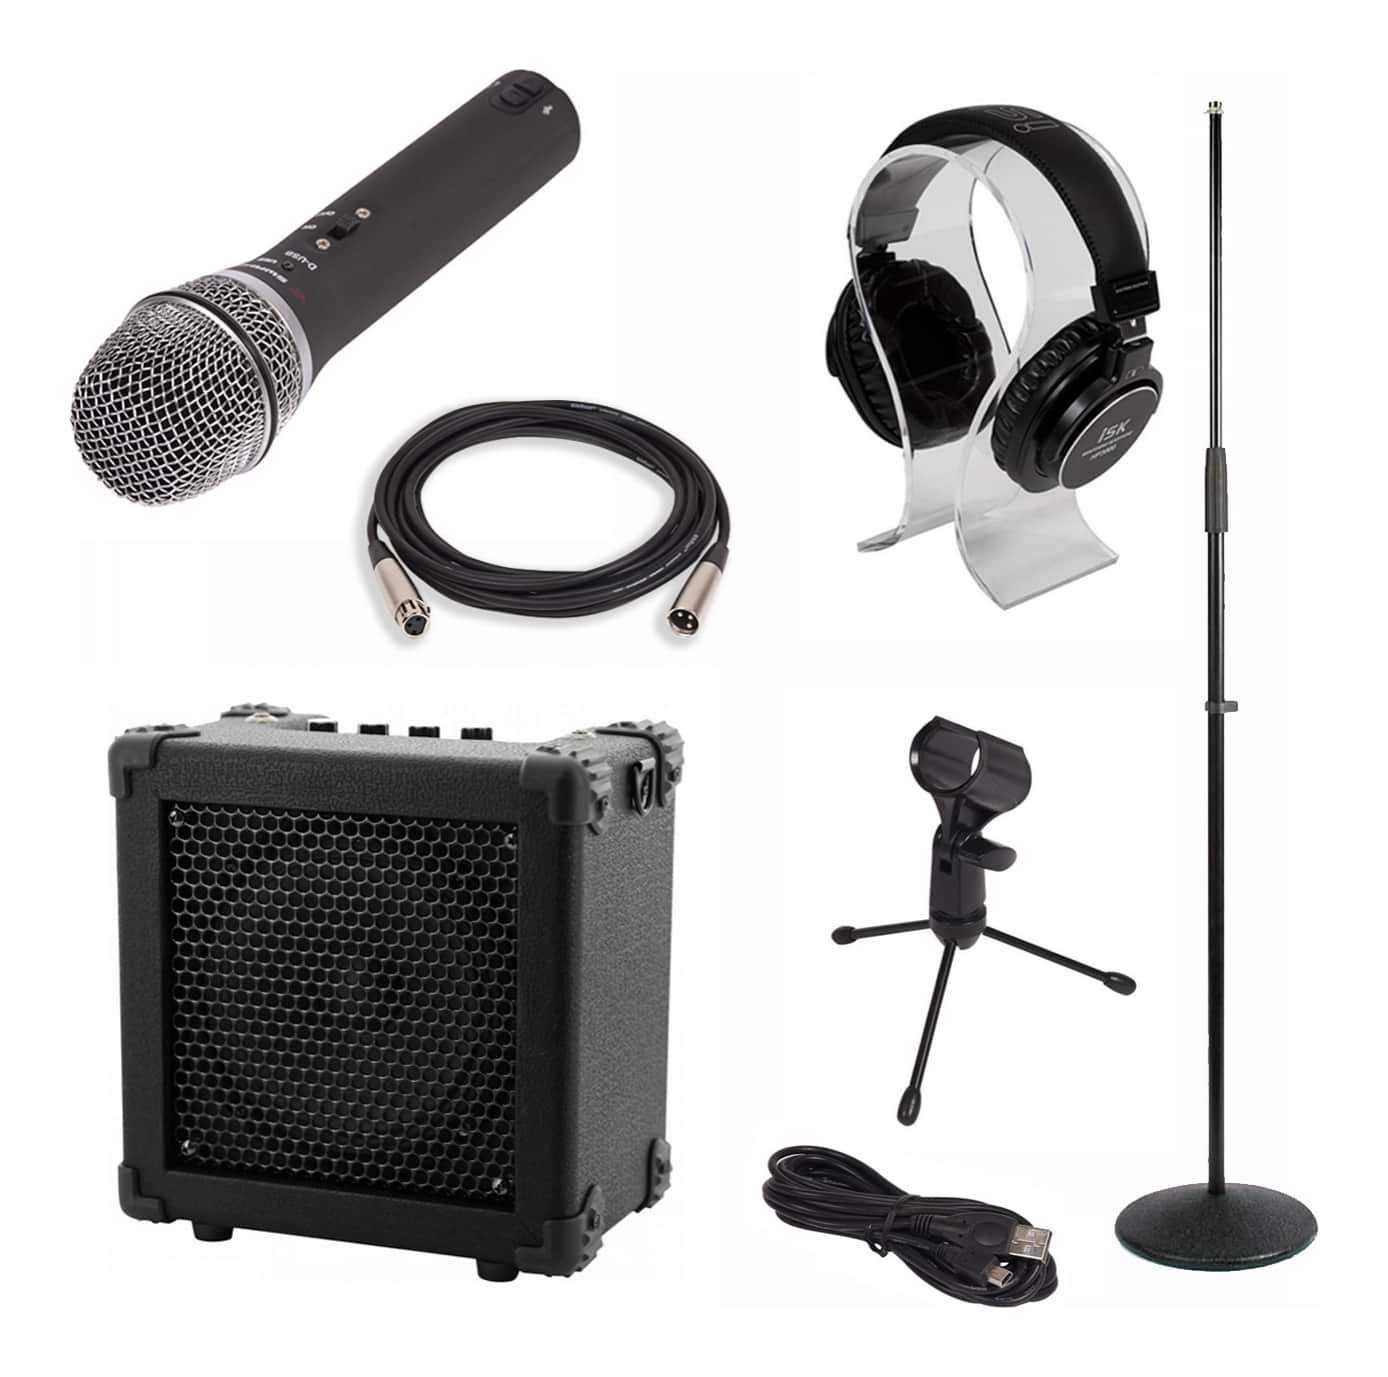 Vocalist Pack - D-USB Microphone + Mic Stand + iSK HP-3000 Headphone + Amplifier